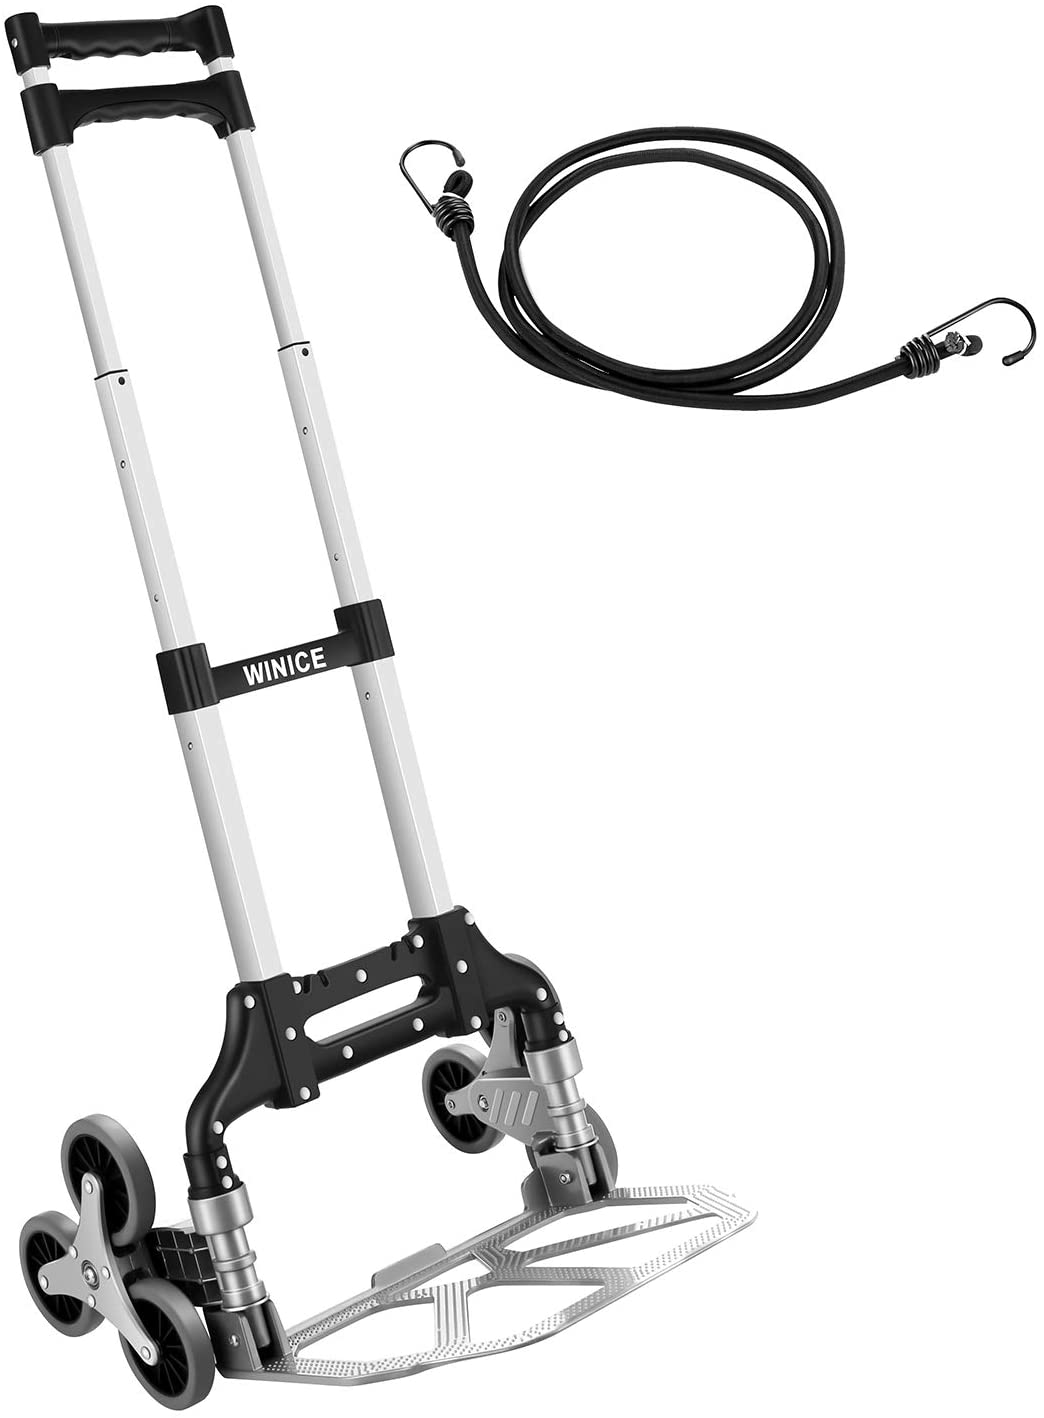 Stair Climber Trolley Portable Folding Trolley Height Adjustable Climbing Cart Rubber Three-Wheels for Supermarket, Home